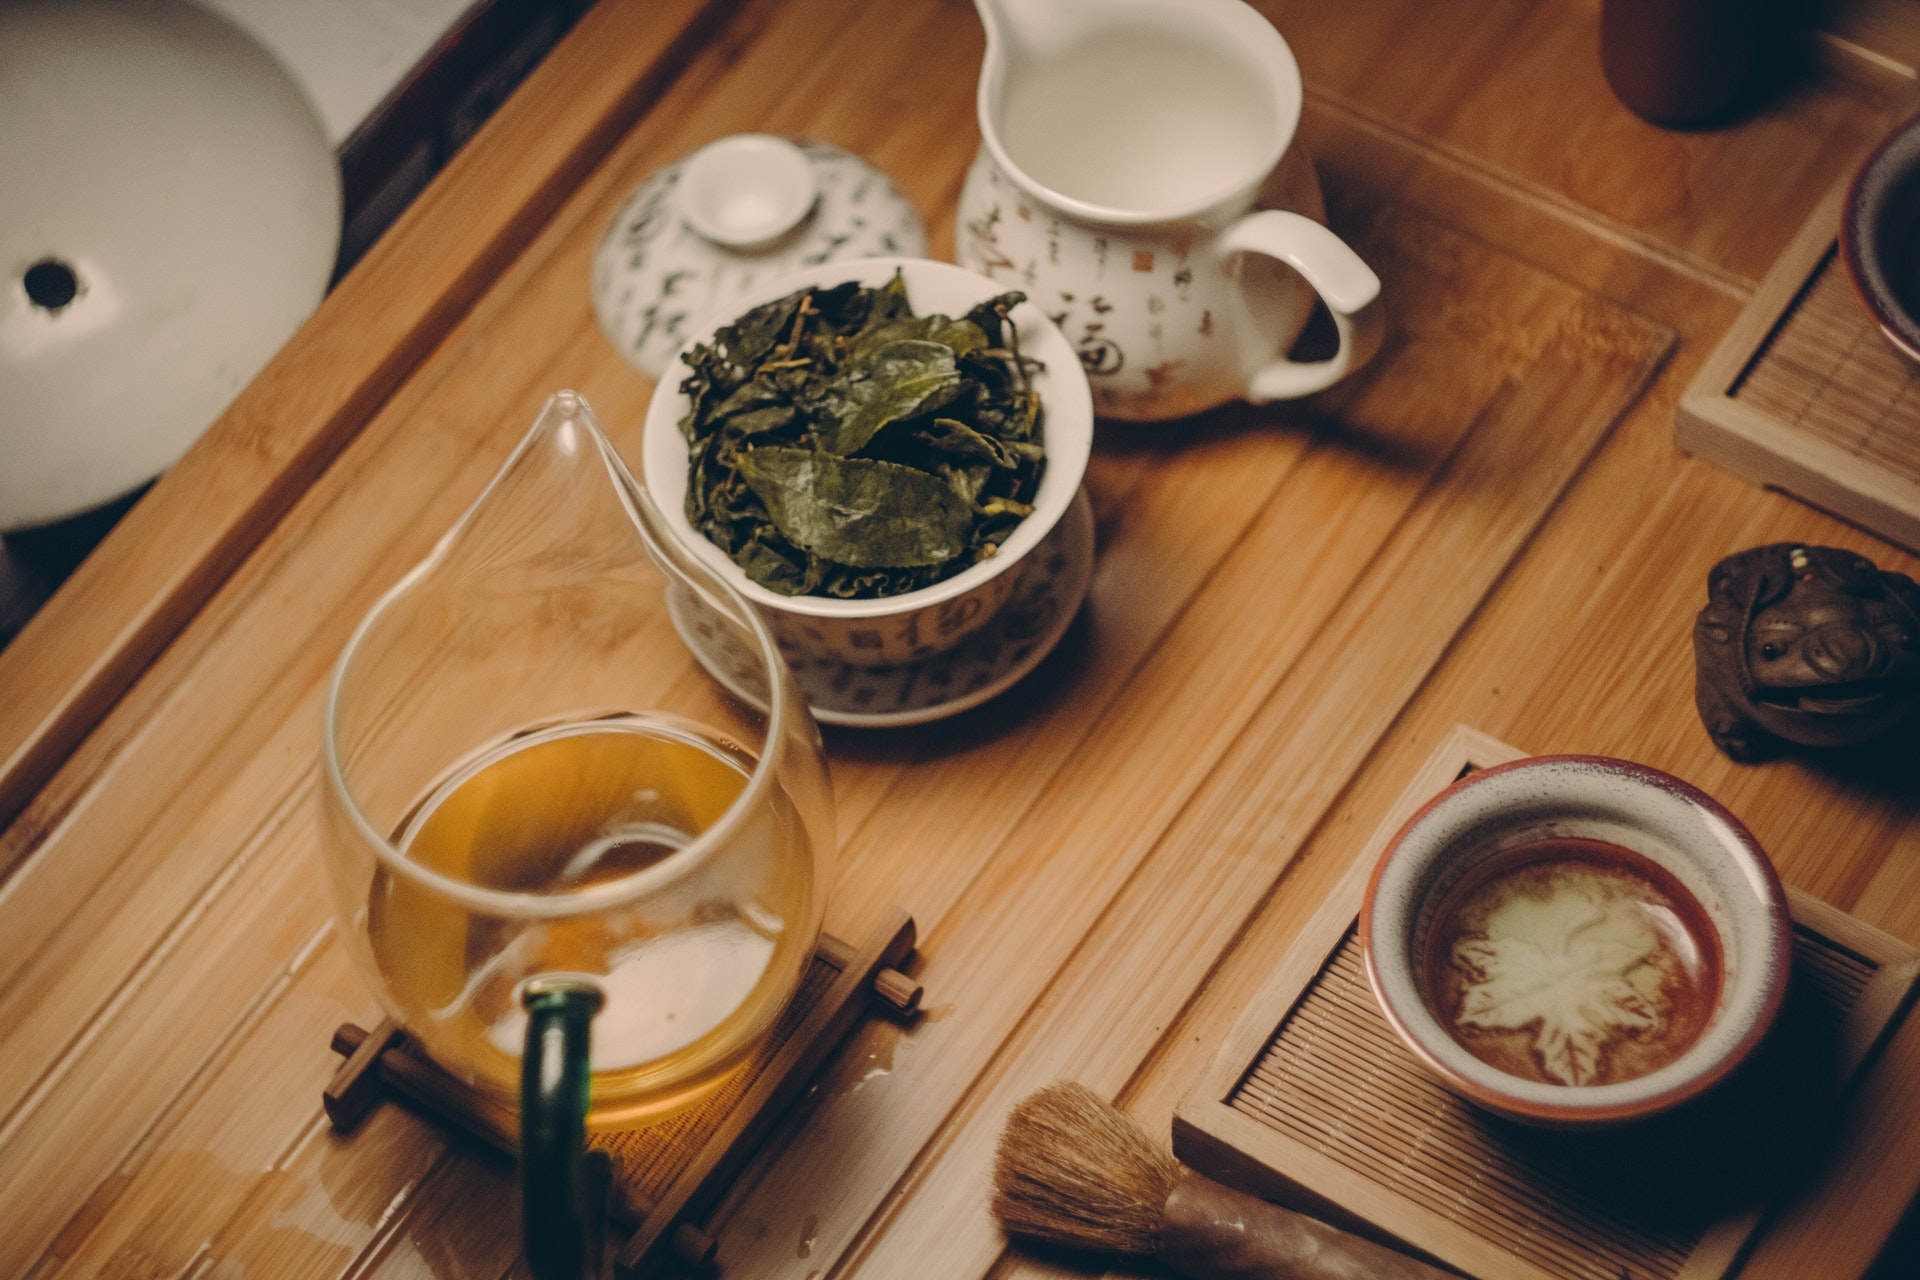 Make a tea with the leaves you used